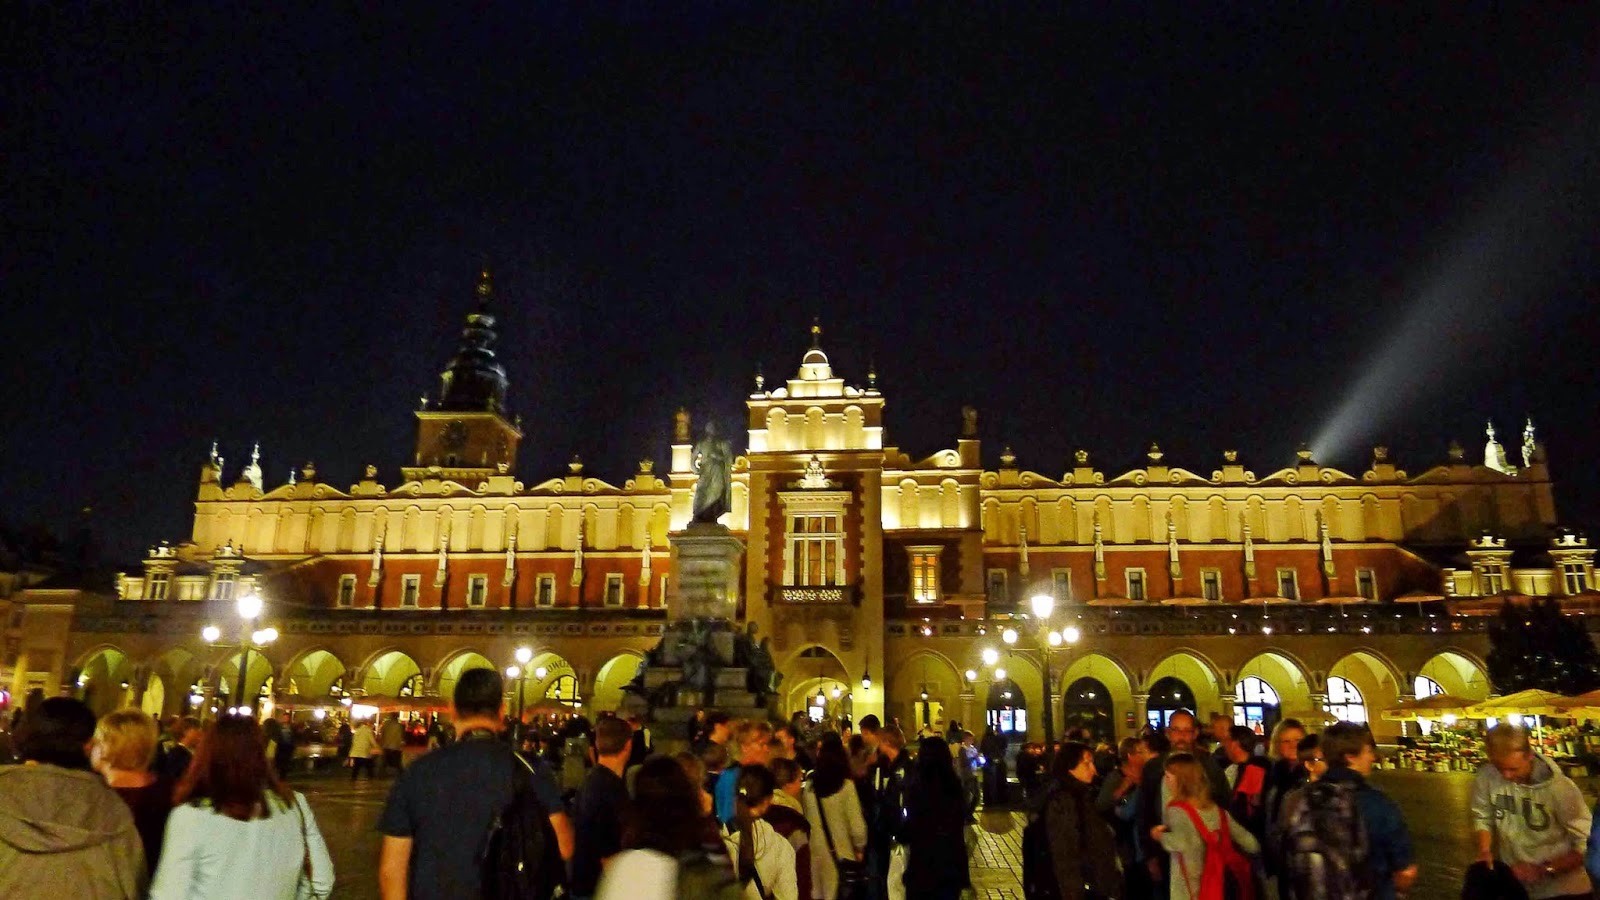 Krakow Cloth Hall at Night